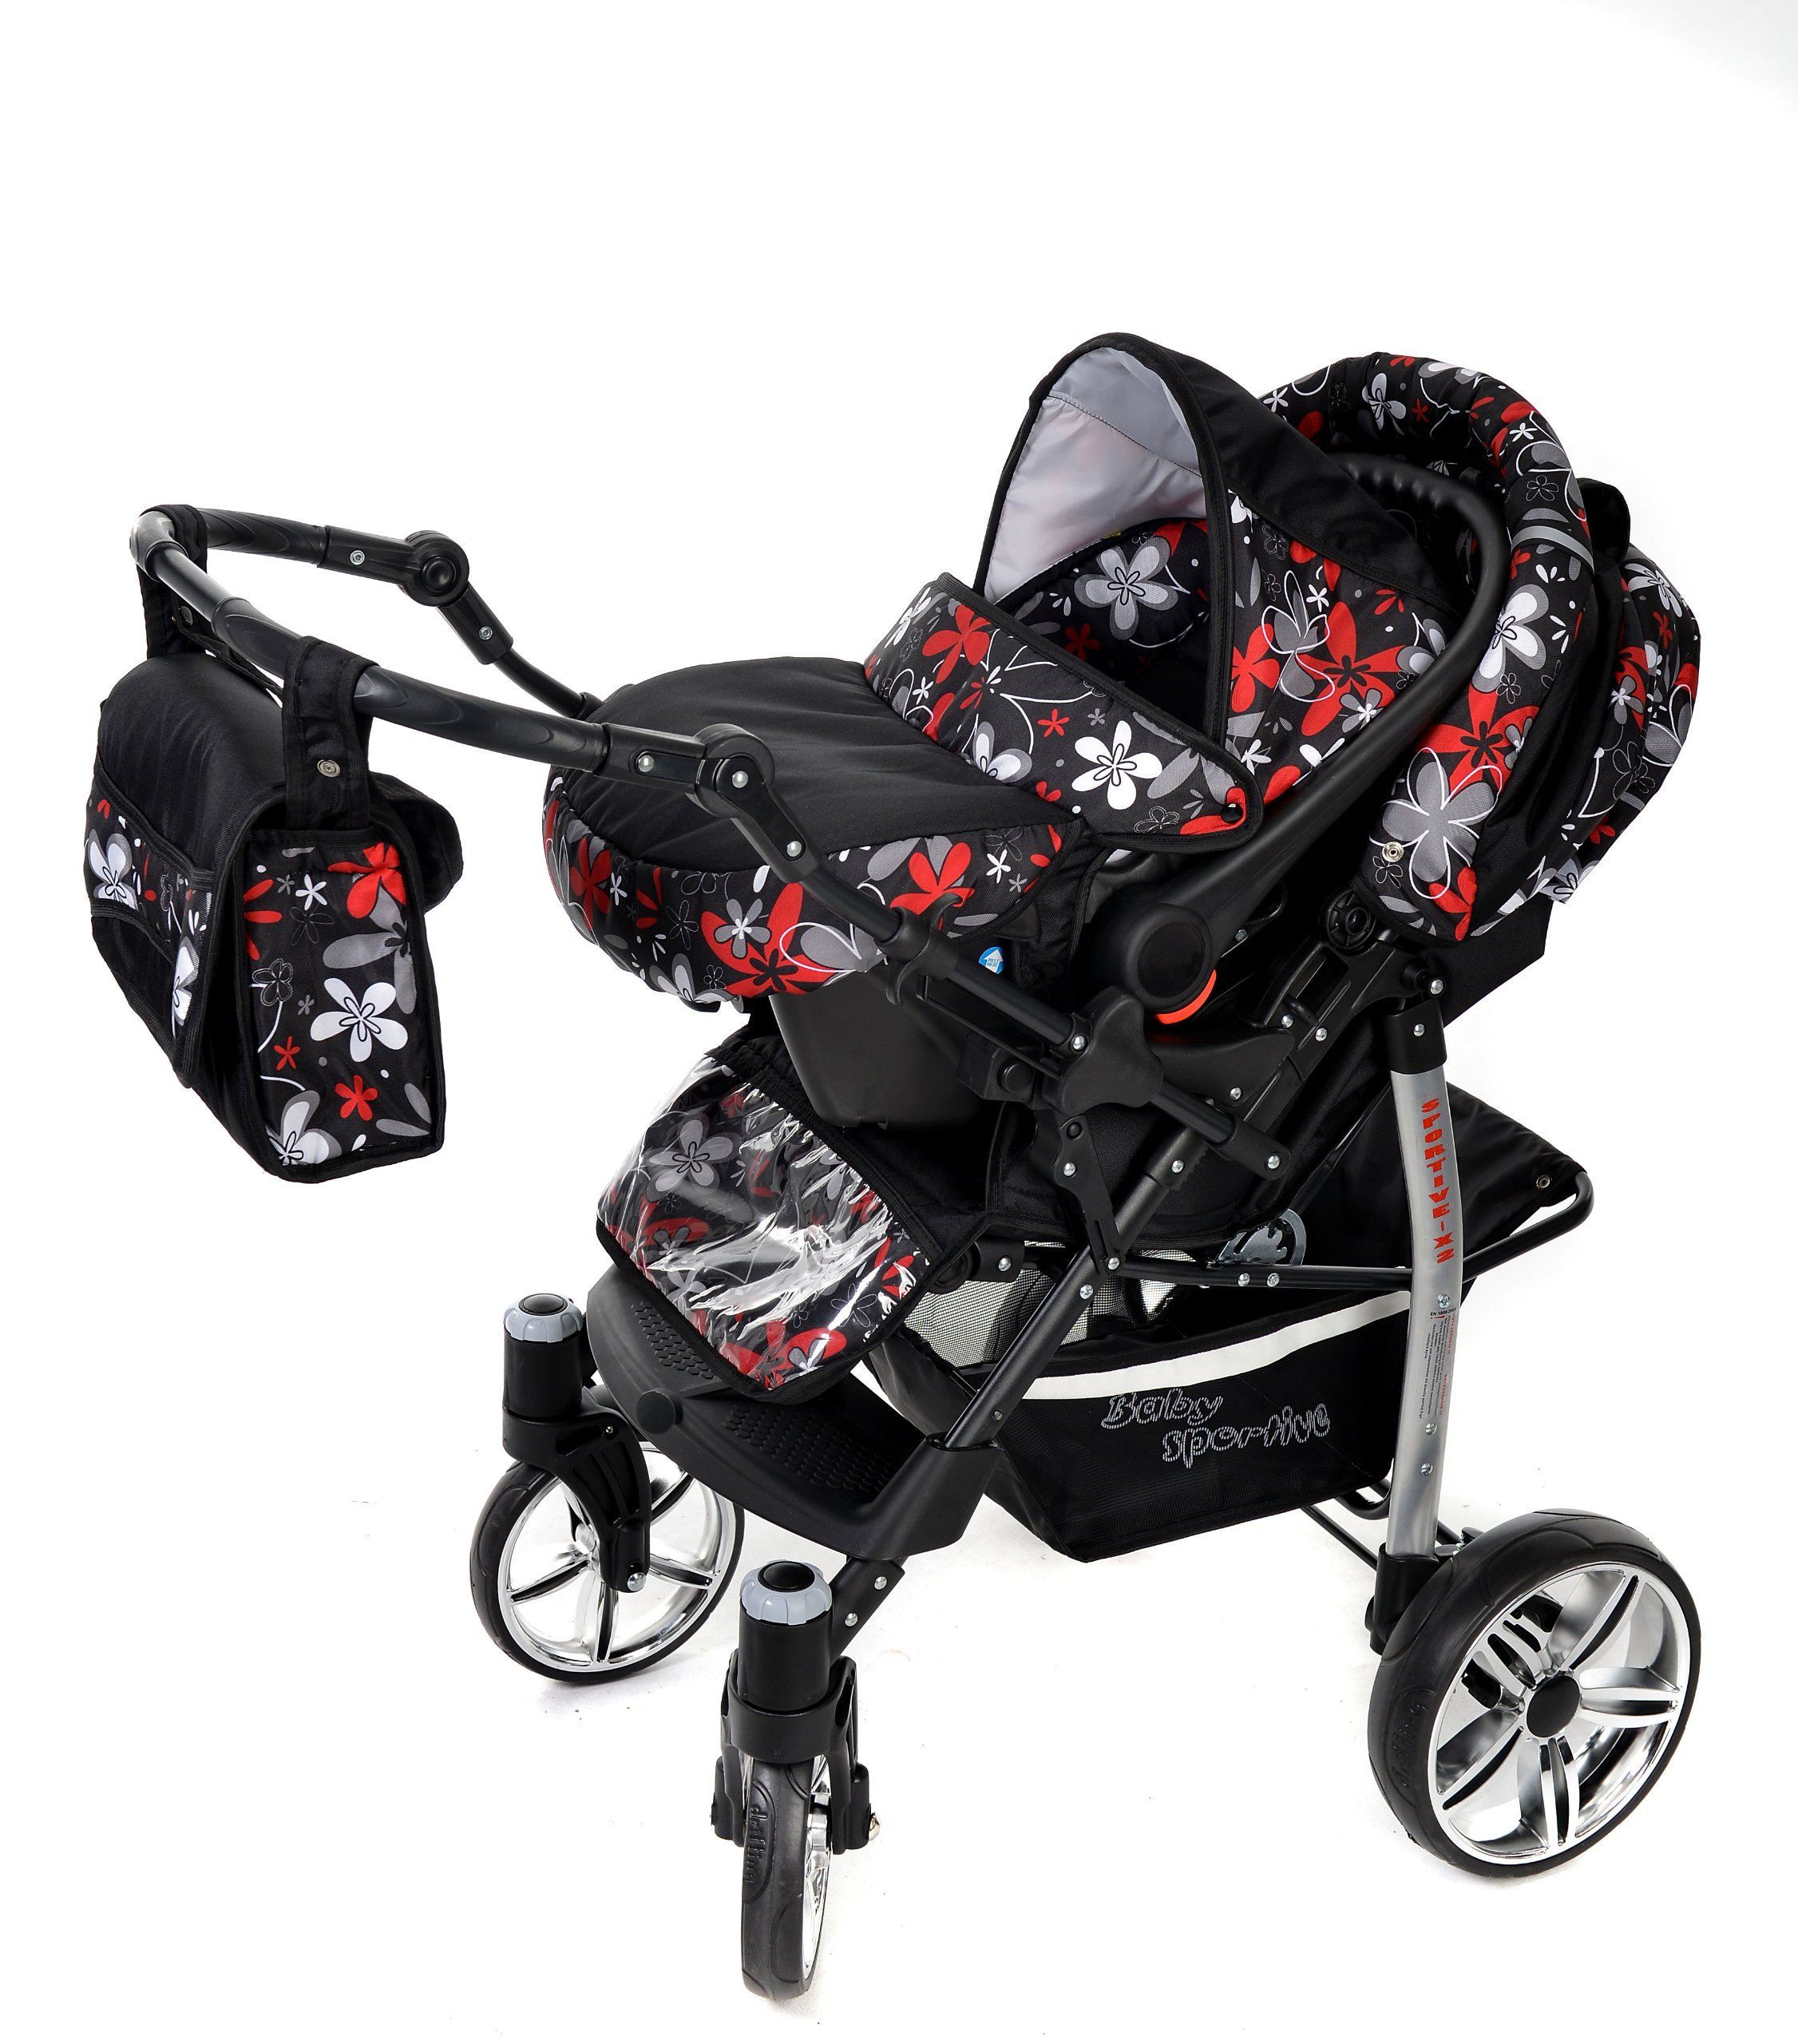 Sportive X2, 3-in-1 Travel System incl. Baby Pram with Swivel Wheels, Car Seat, Pushchair & Accessories (3-in-1 Travel System, Black & Small Flowers) Baby Sportive 3 in 1 Travel System All in One Set - Pram, Car Carrier Seat and Sport Buggy + Accessories: carrier bag, rain protection, mosquito net, changing mat, removable bottle holder and removable tray for your child's bits and pieces Suitable from birth, Easy Quick Folding System; Large storage basket; Turnable handle bar that allows to face or rear the drive direction; Quick release rear wheels for easy cleaning after muddy walks Front lockable 360o swivel wheels for manoeuvrability , Small sized when folded, fits into many small car trunks, Carry-cot with a removable hood, Reflective elements for better visibility 6